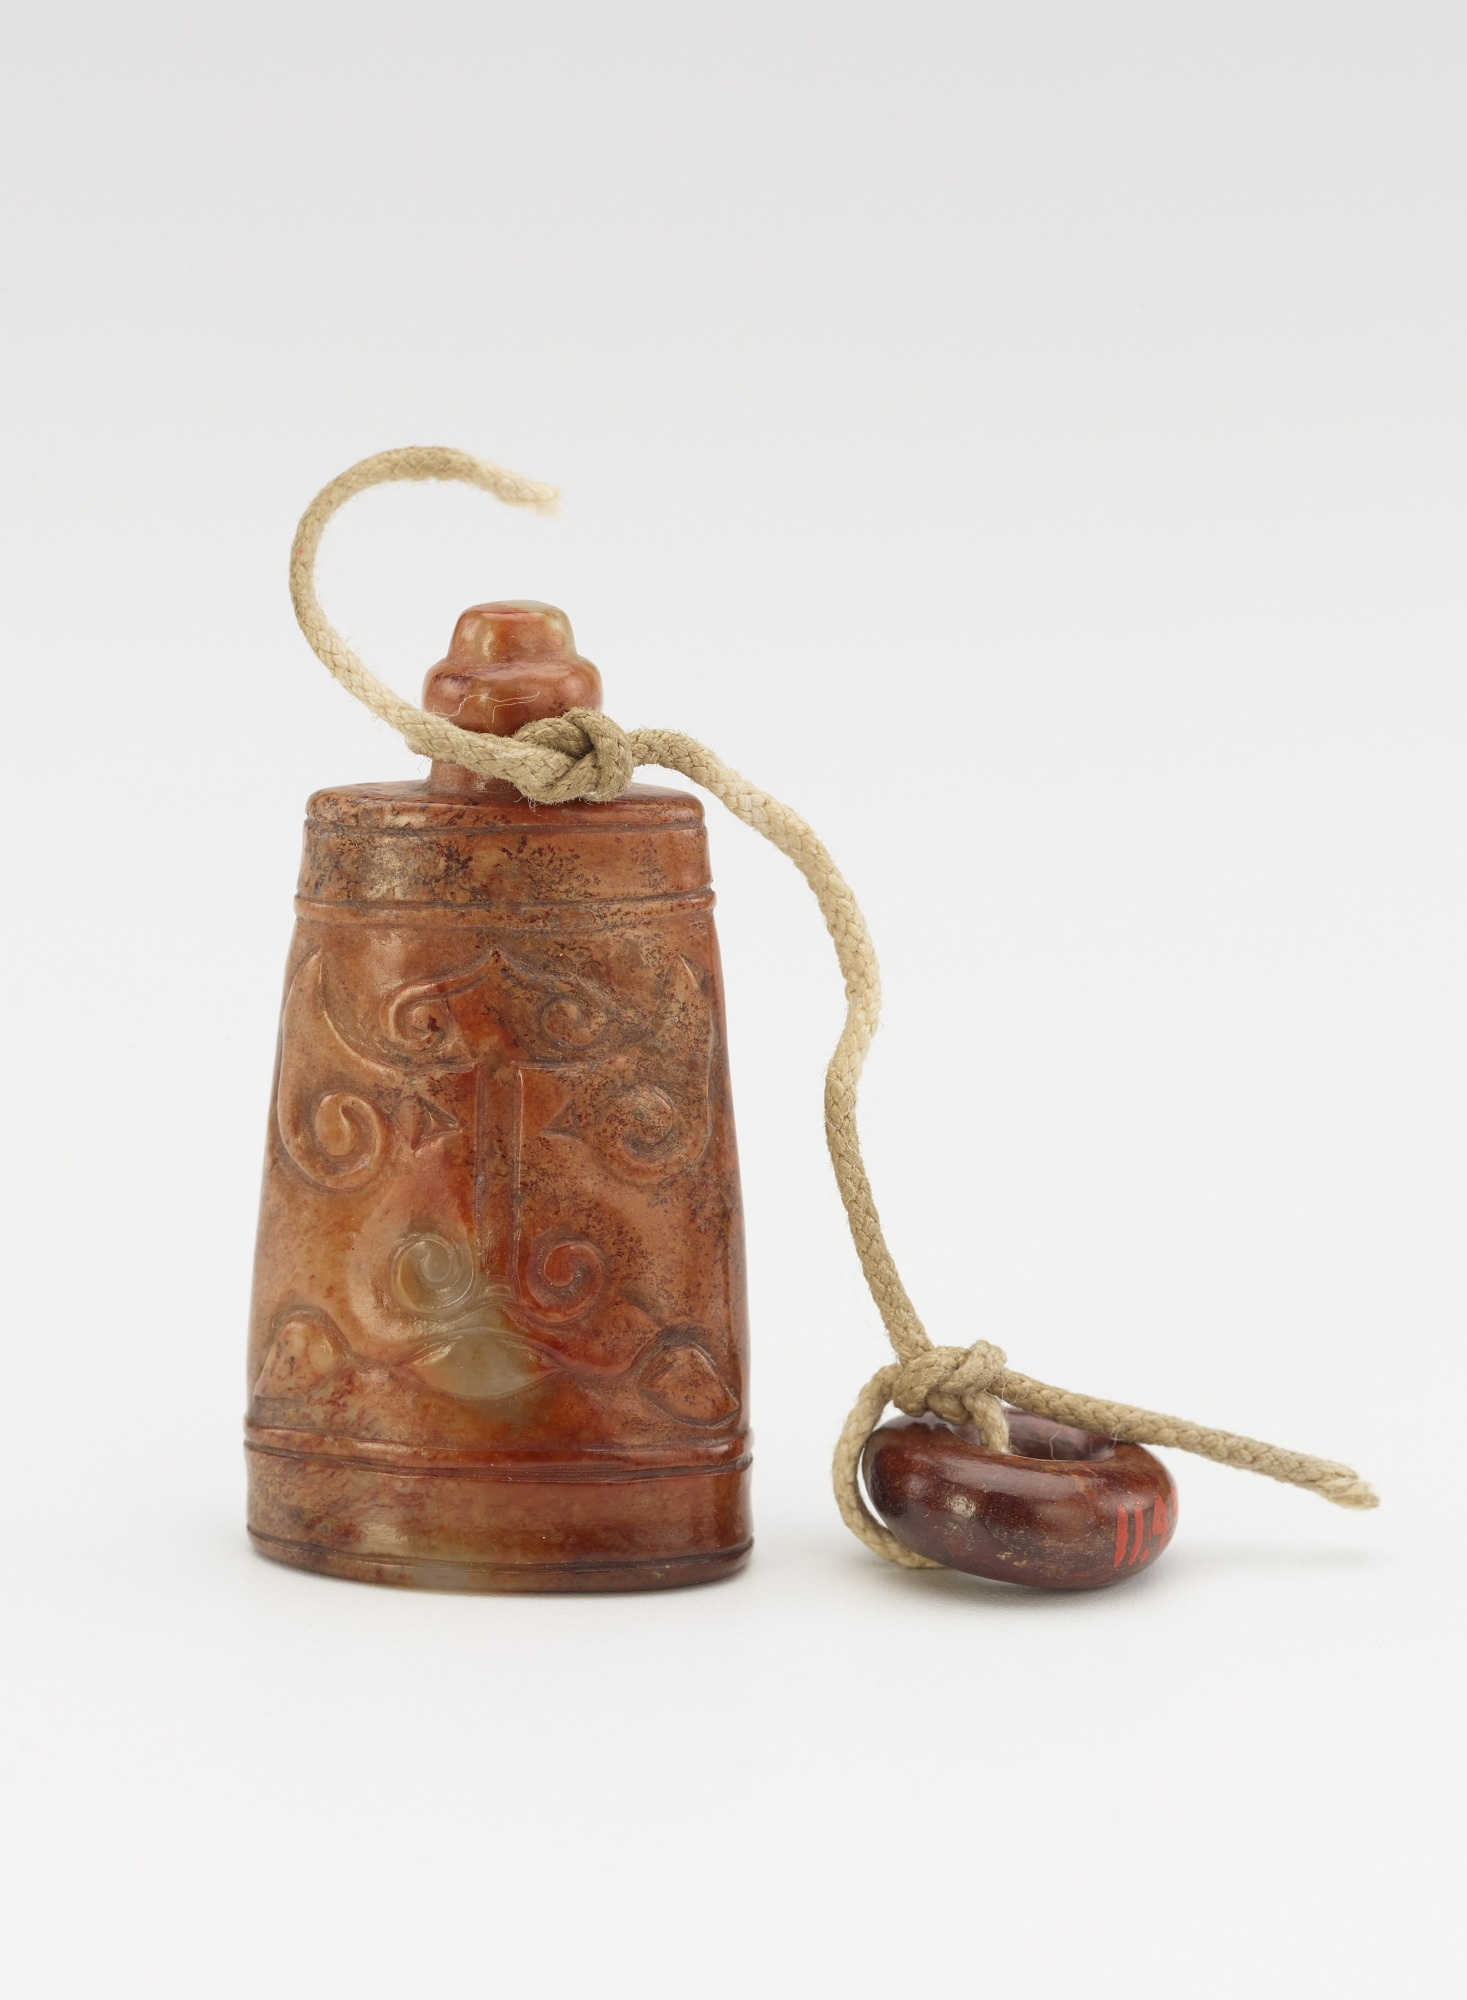 Miniature bell and ornament